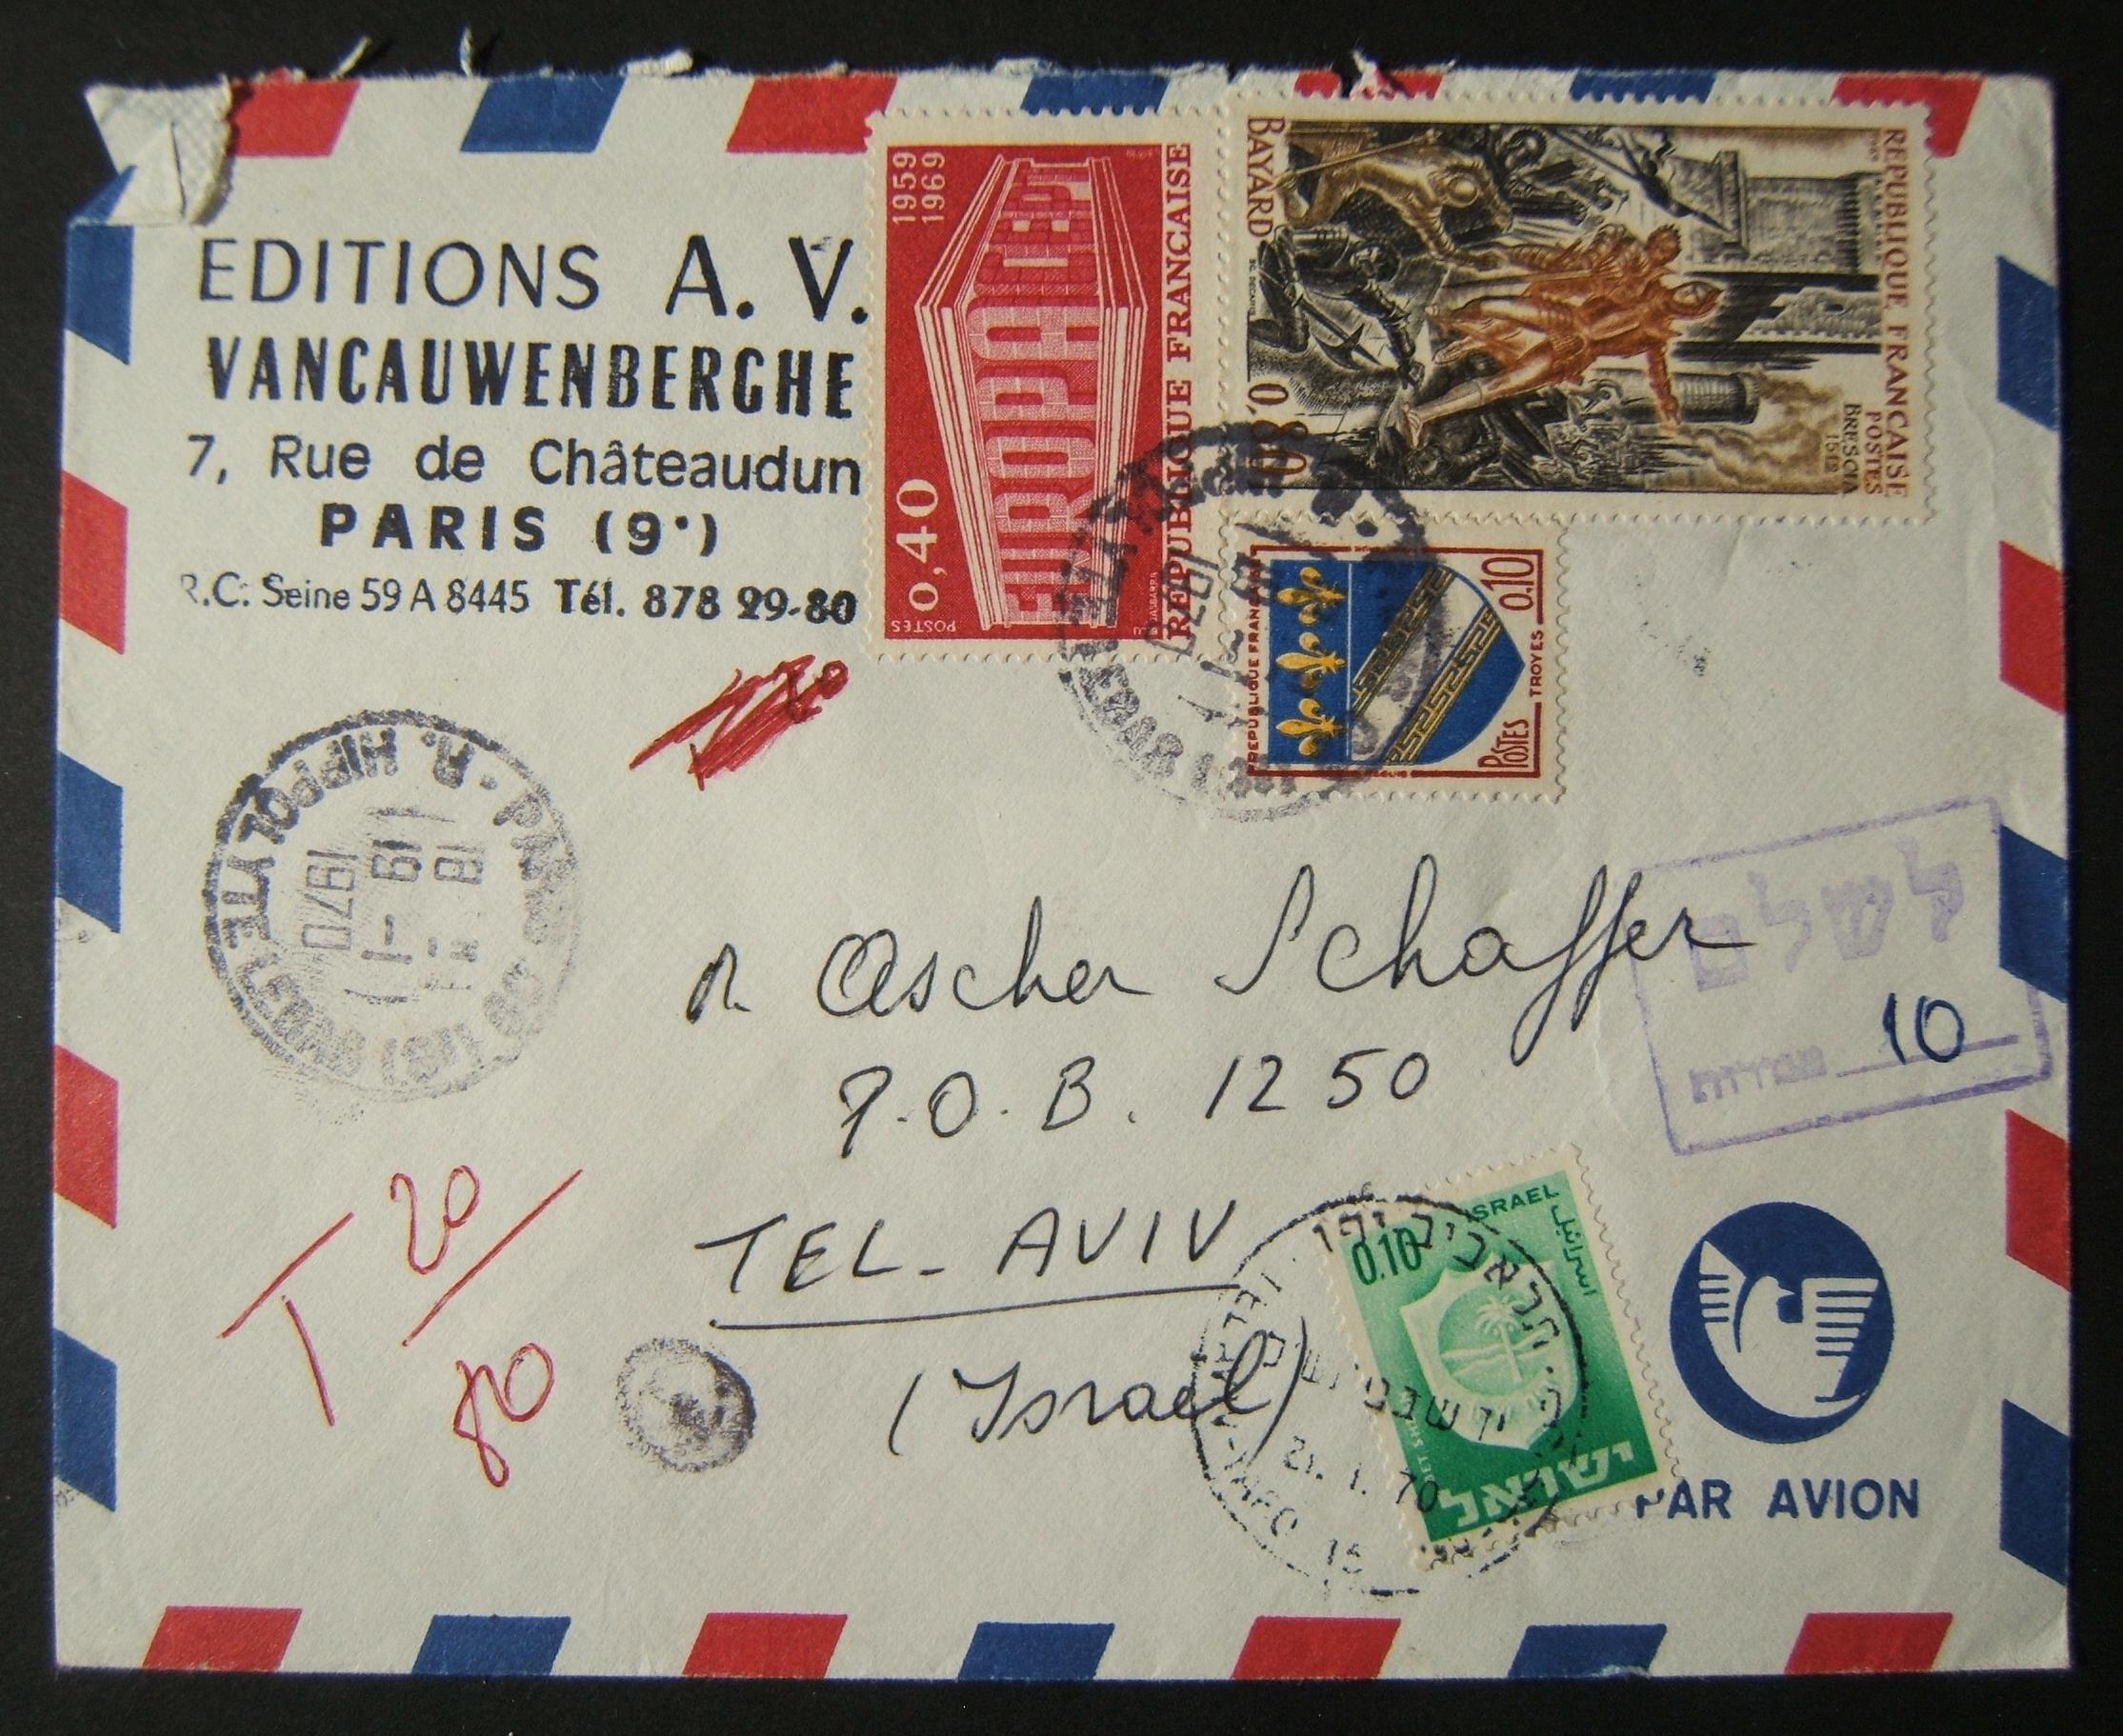 1970 incoming French taxed mail: 19-1-70 business stationary airmail commercial cover ex PARIS to TLV underfranked at 1.30Fr and taxed 0.10L in Israel, paid 21-1-70 using 1965/67 1